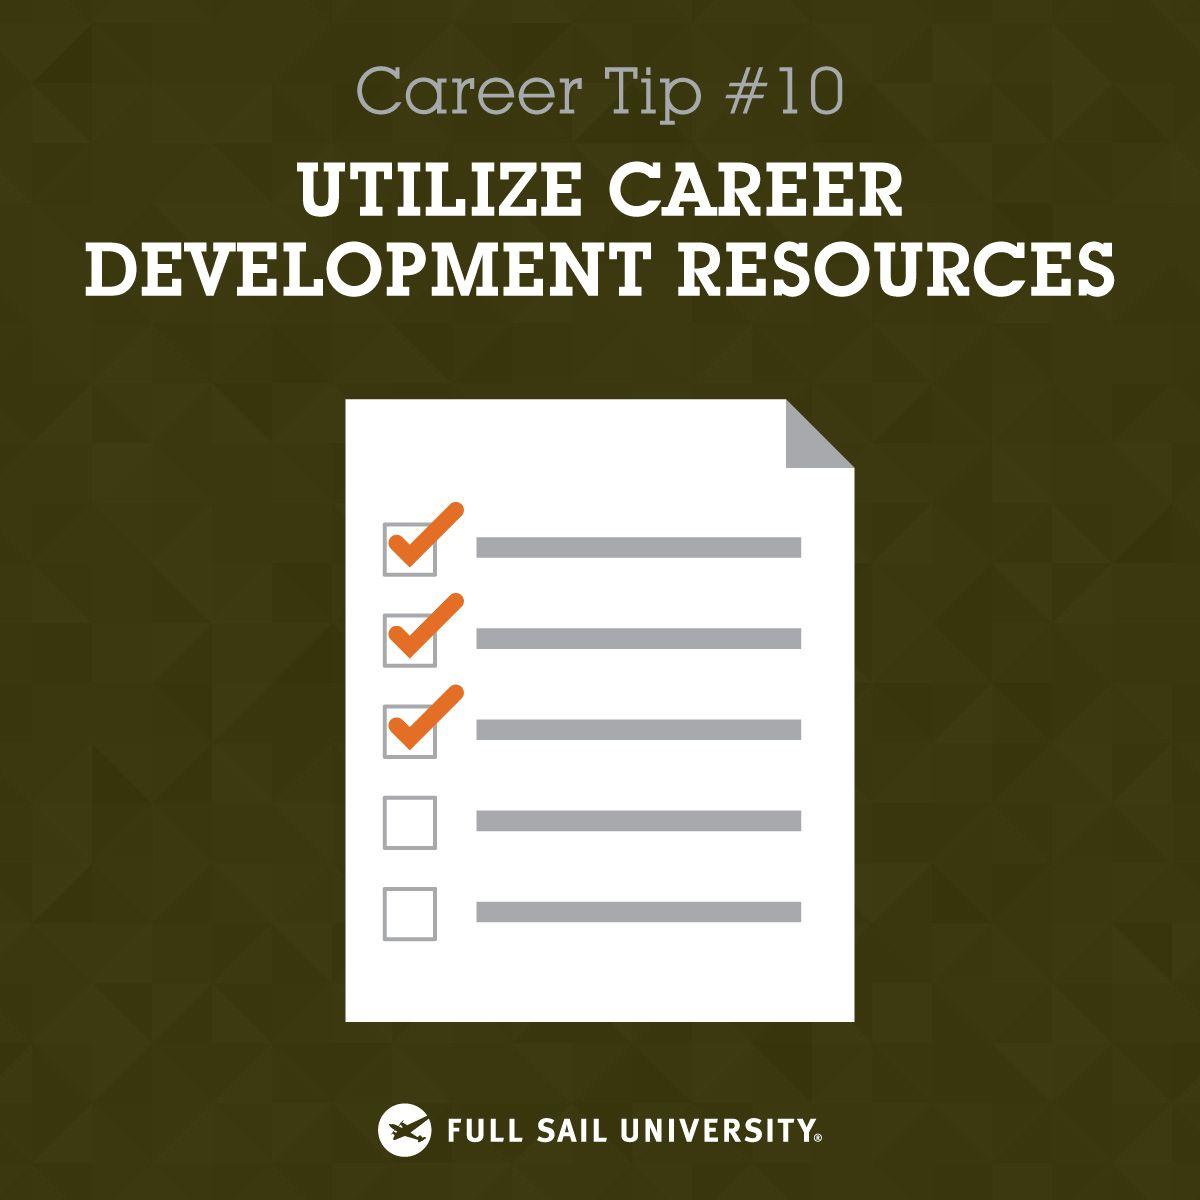 Resume Com Review Seek Out Assistance From Your Career Development Departmentthey .